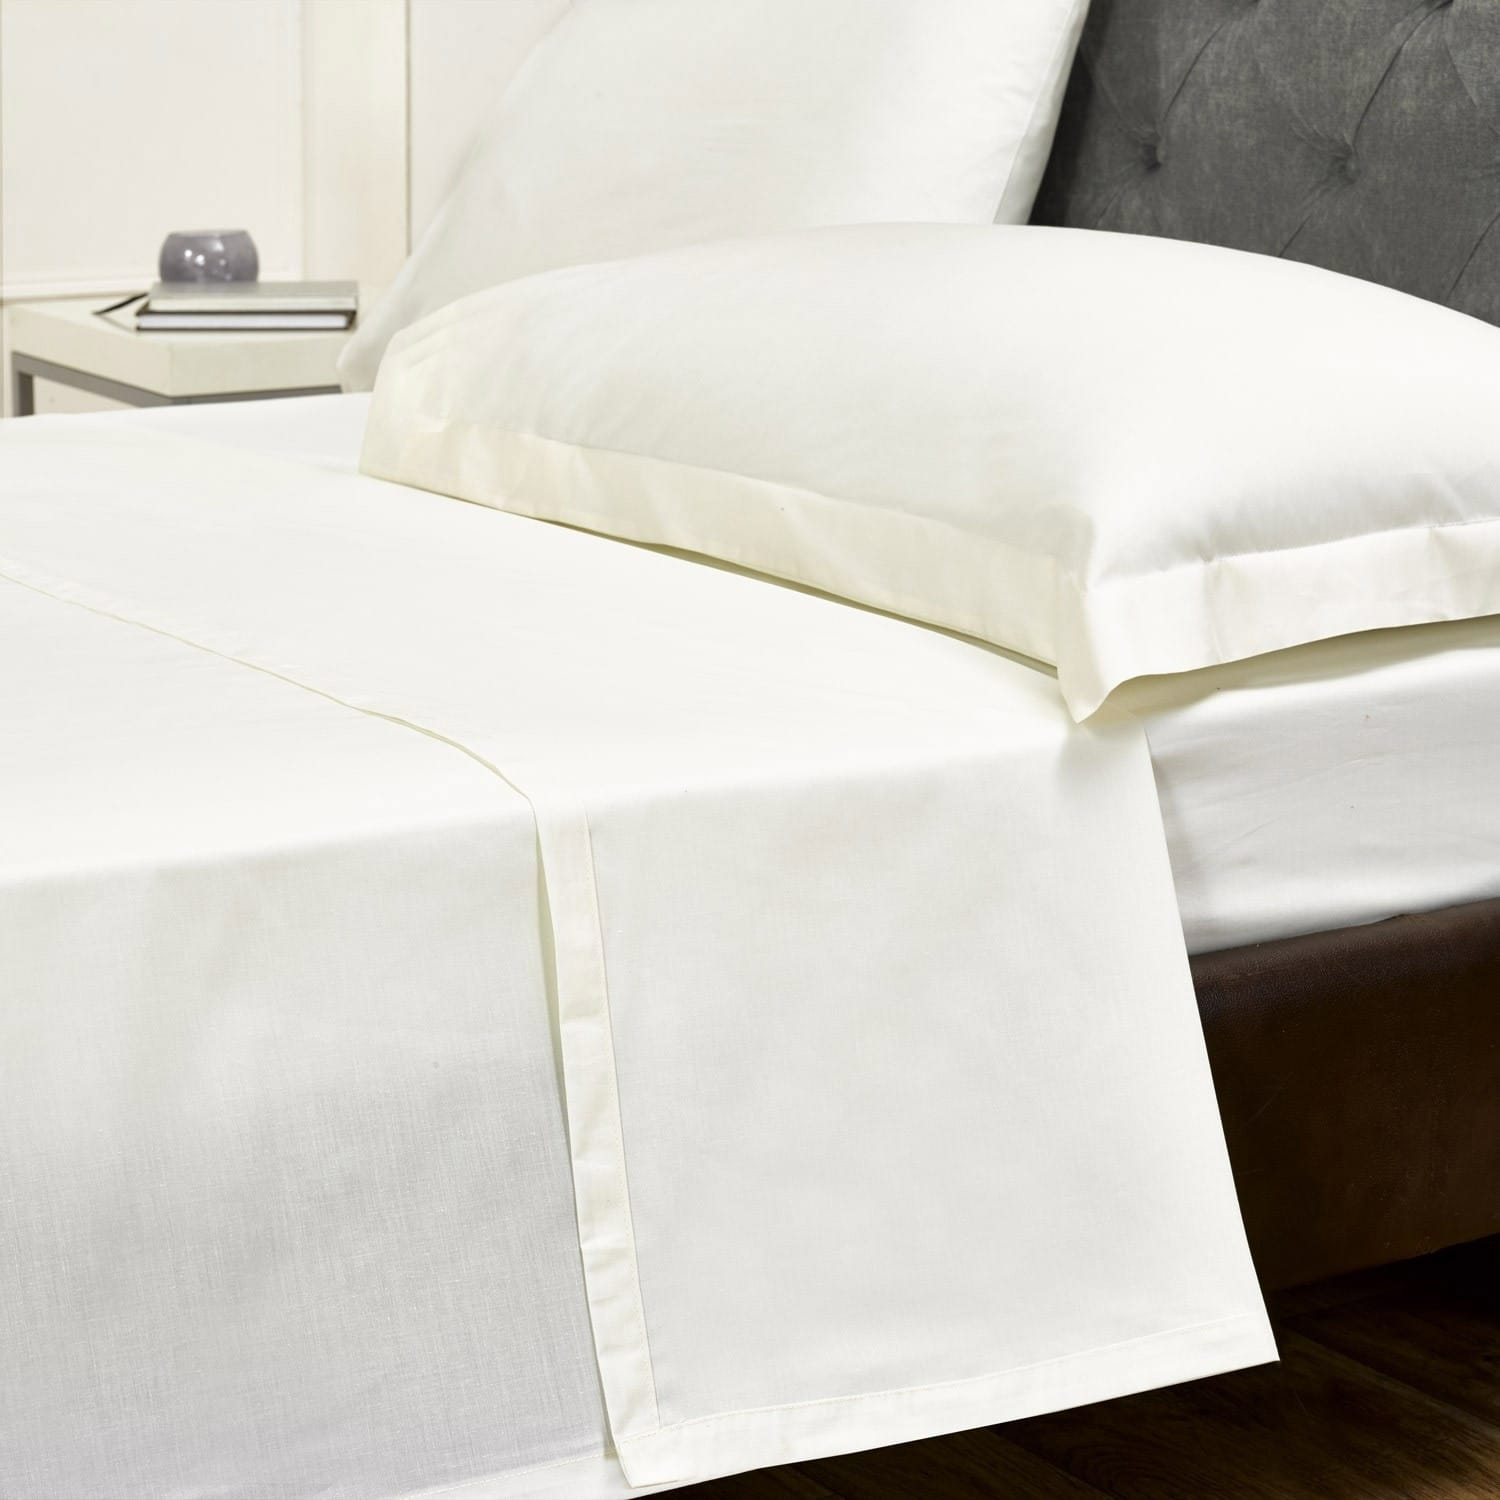 Egyption Flat Bed Sheets Cream